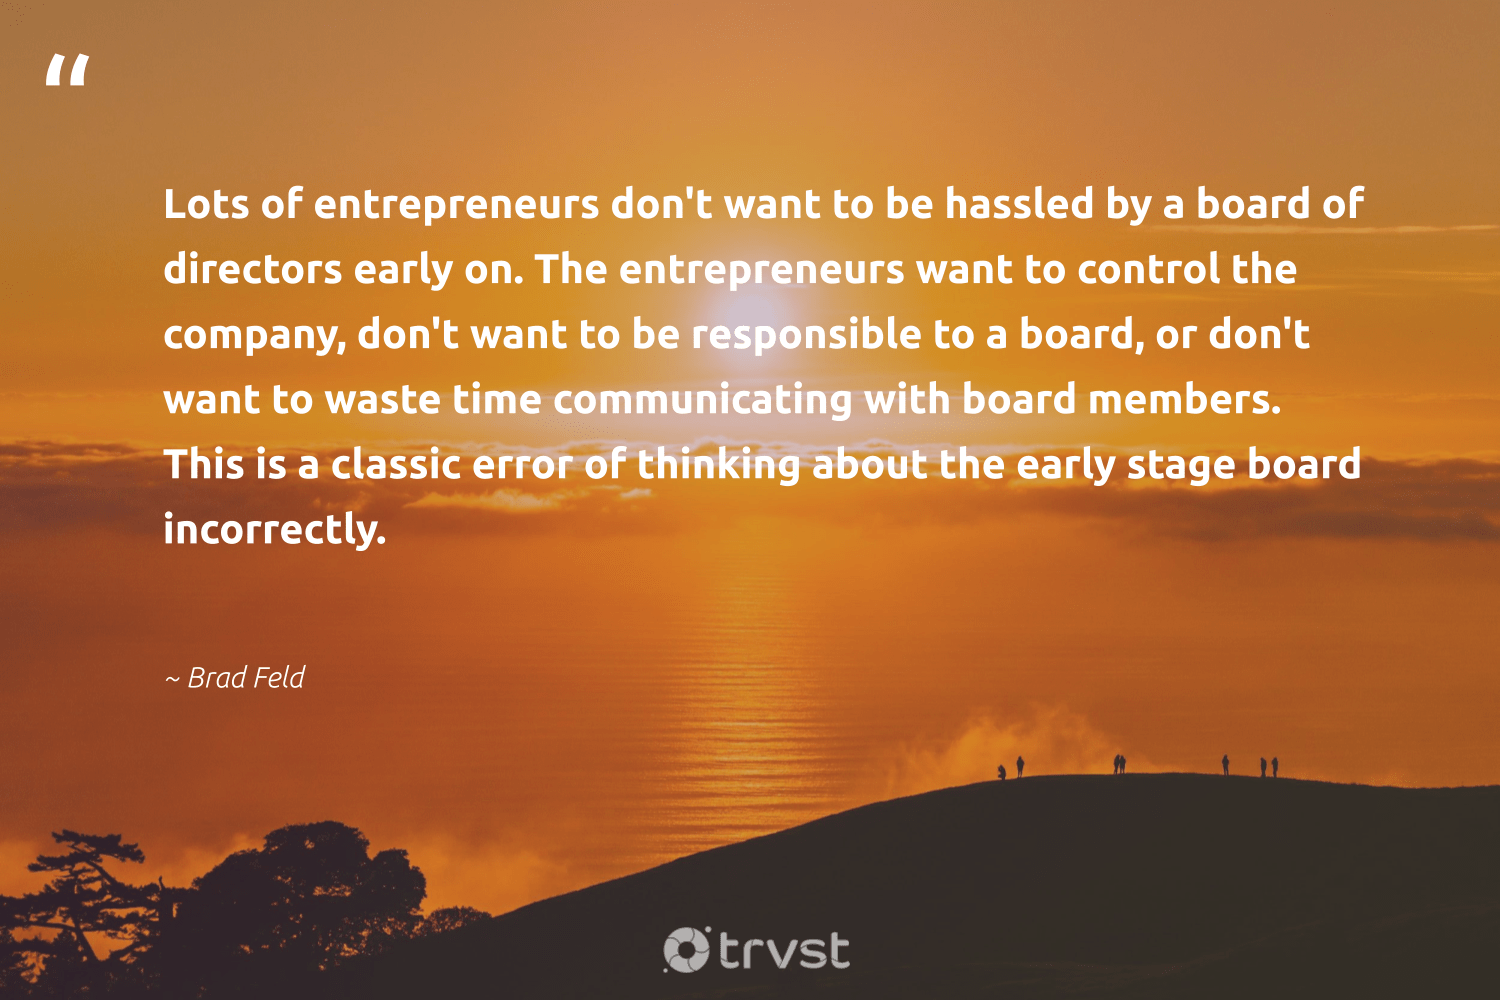 """Lots of entrepreneurs don't want to be hassled by a board of directors early on. The entrepreneurs want to control the company, don't want to be responsible to a board, or don't want to waste time communicating with board members. This is a classic error of thinking about the early stage board incorrectly.""  - Brad Feld #trvst #quotes #waste #makeadifference #socialchange #weareallone #takeaction #betterplanet #gogreen #giveback #dotherightthing #dogood"